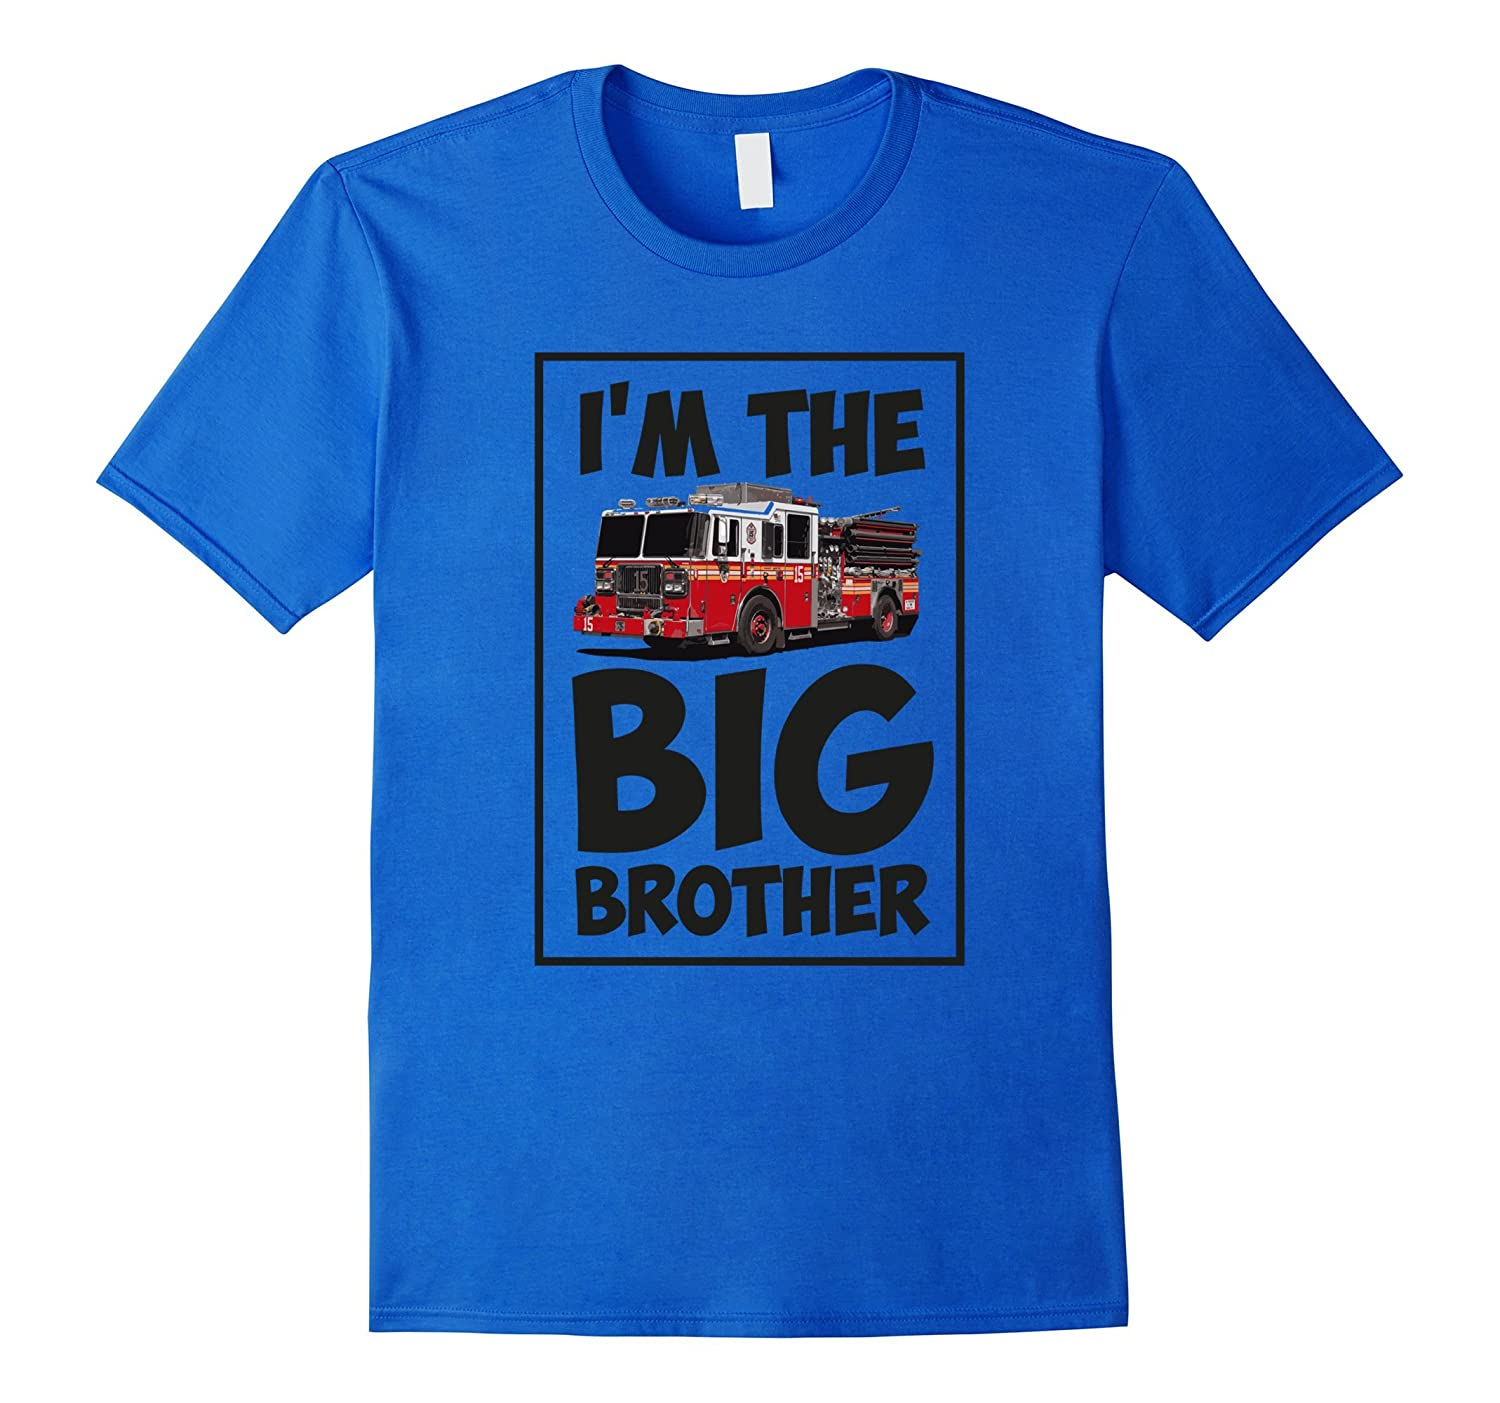 Shop for big brother tee shirts online at Target. Free shipping on purchases over $35 and save 5% every day with your Target REDcard. Toddler Boys' Big Brother T-Shirt - Just One You™ Made by Carter's® Green 18M. Just One You made by carter's. out of 5 stars with 3 reviews. 3.